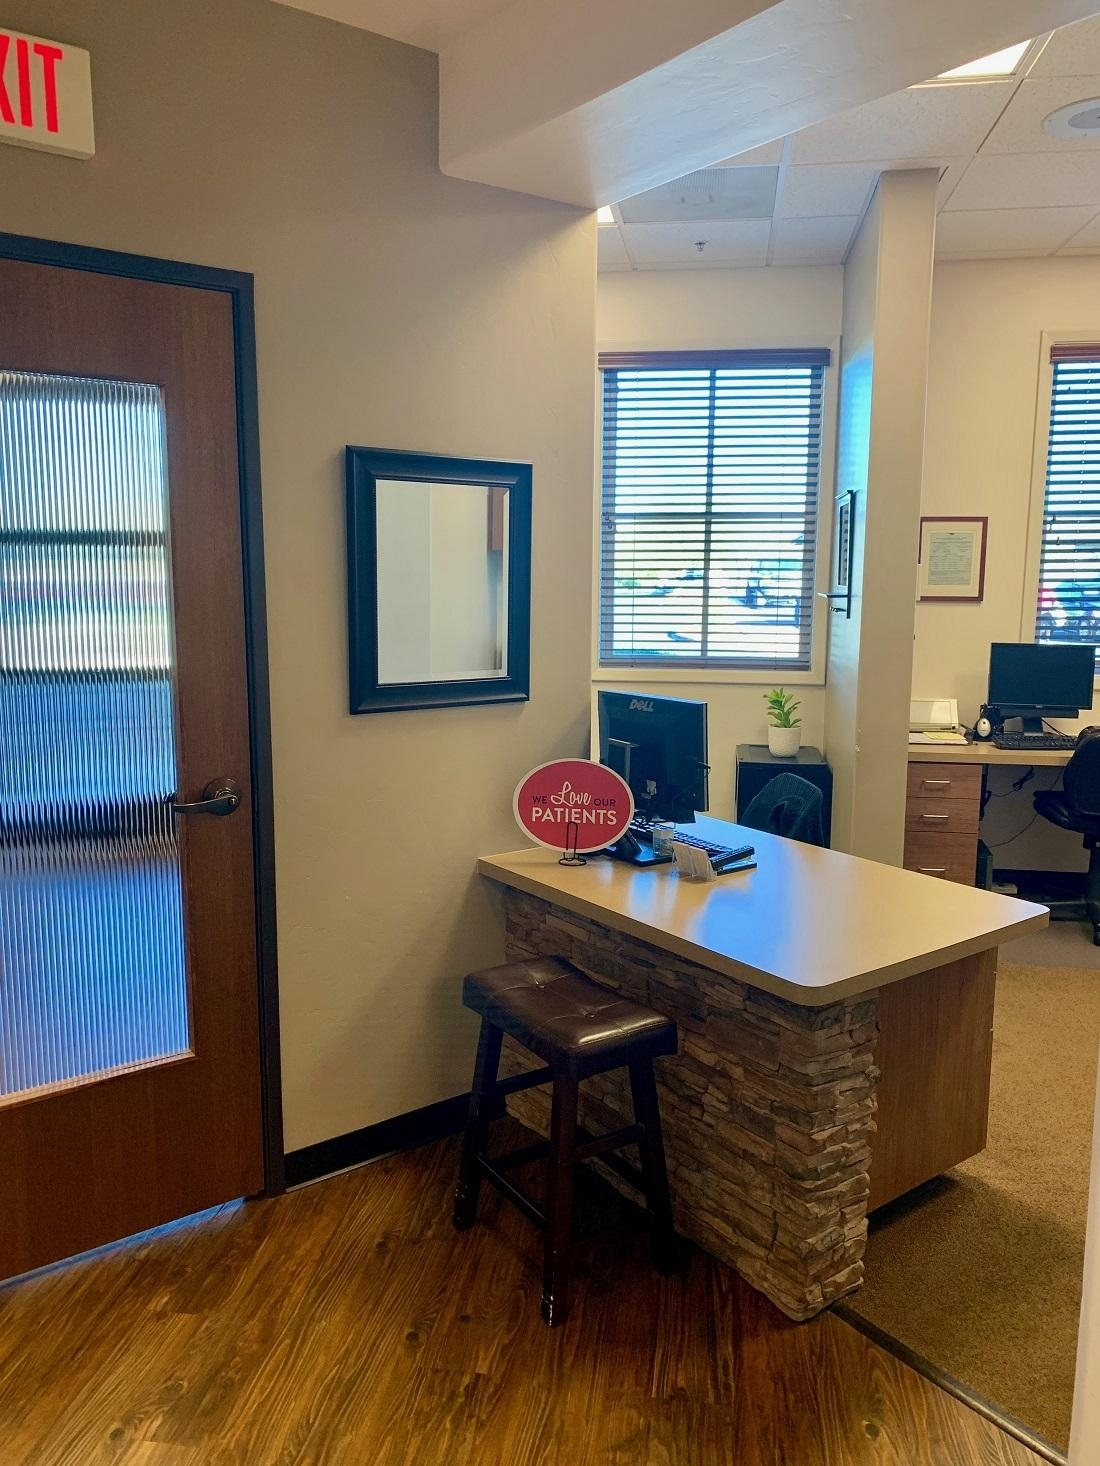 The check-out area at Smith Dentalworks